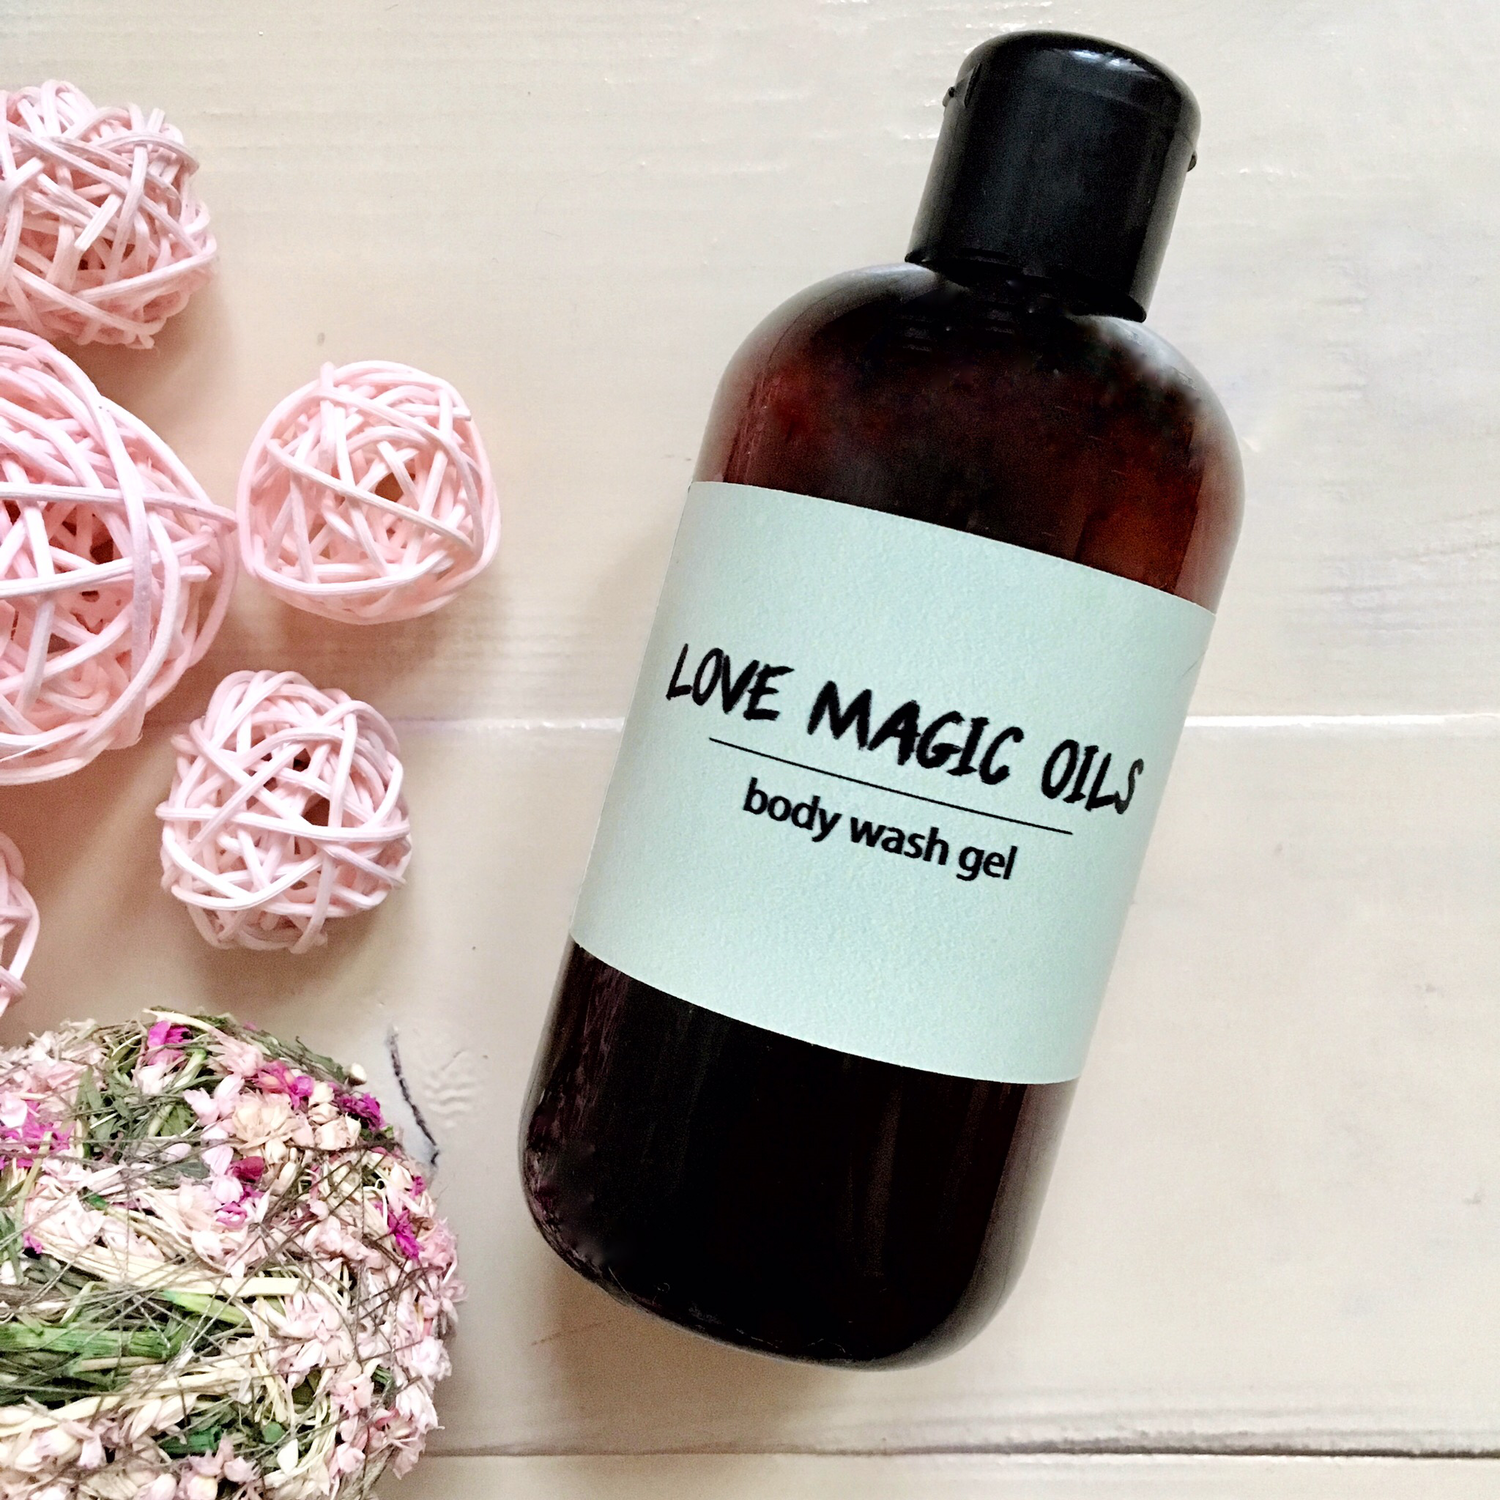 Love Magic Oils (body wash)